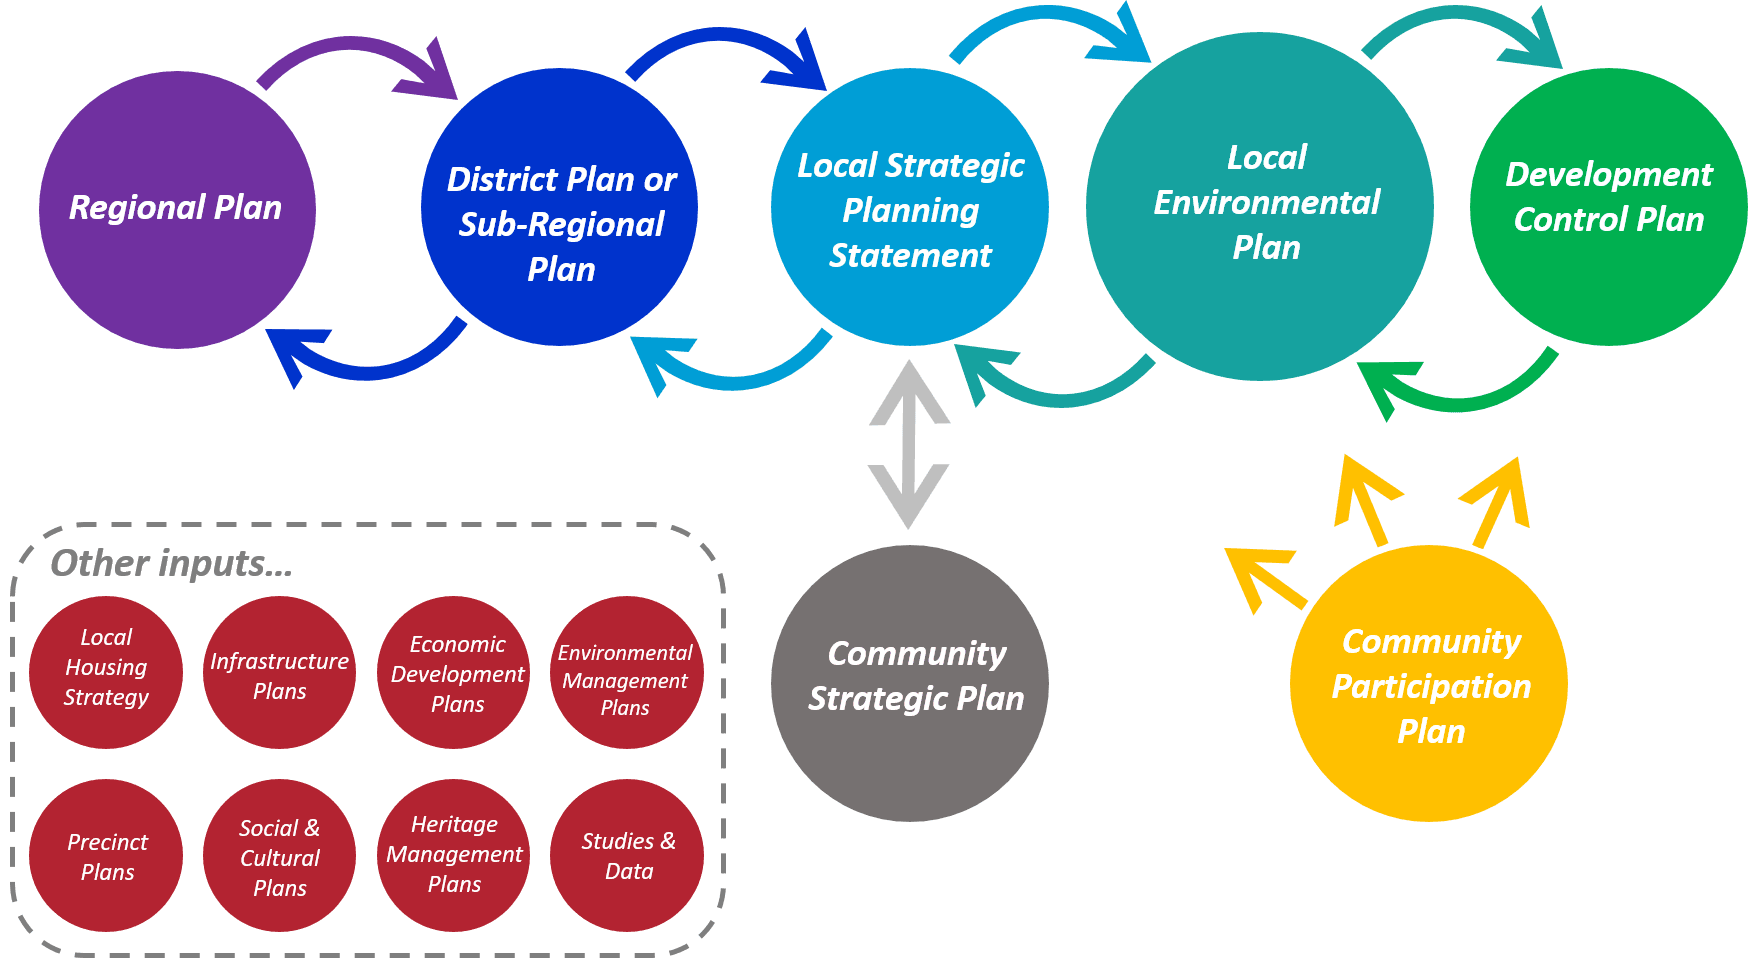 Local Environmental Plan